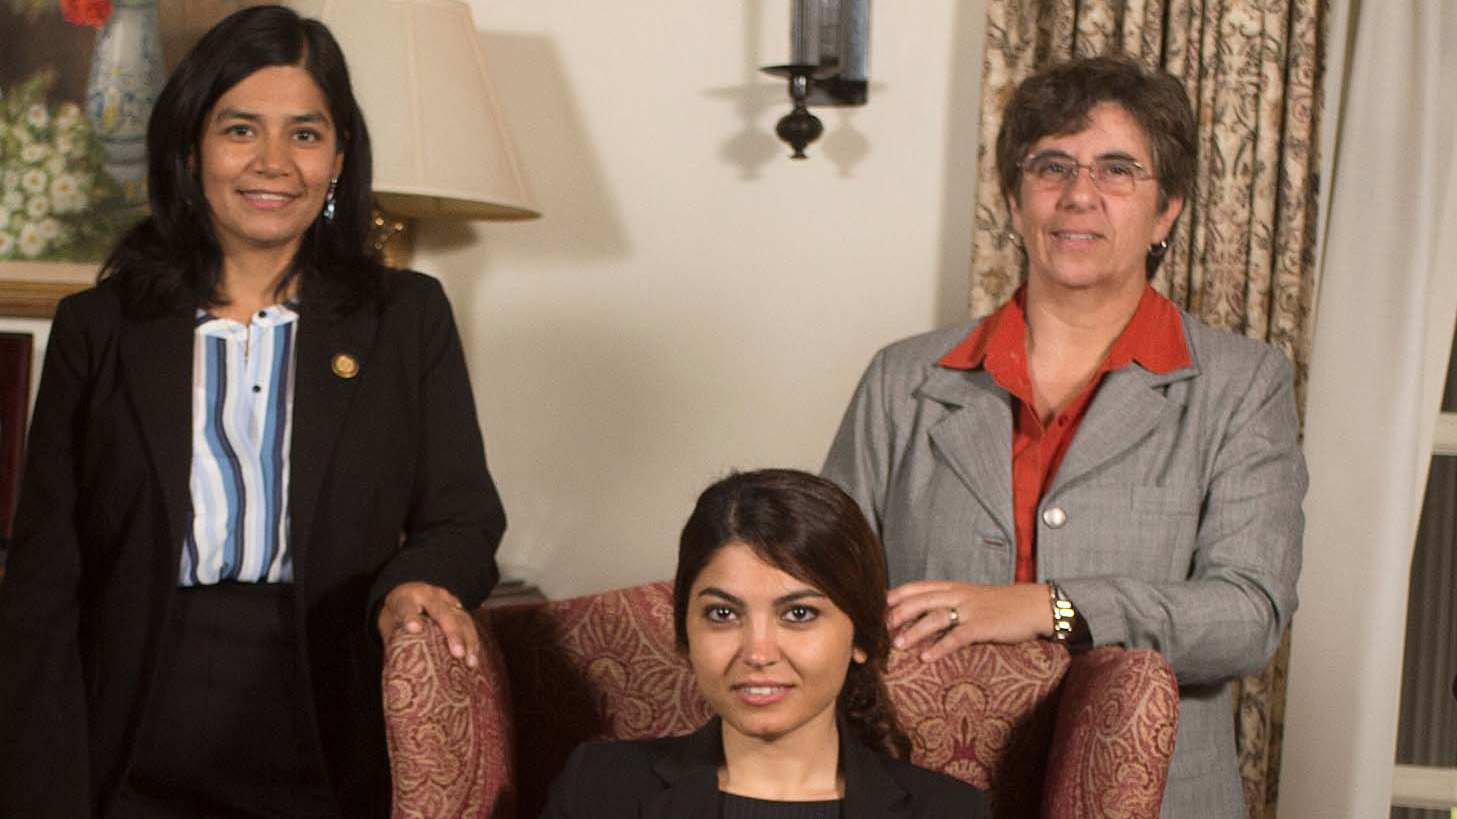 From left to right: Civil Engineering Professor Monica Palomo; Industrial & Manufacturing Engineering Professor Shokoufeh Mirzaei; and Civil Engineering Professor Francelina Neto.